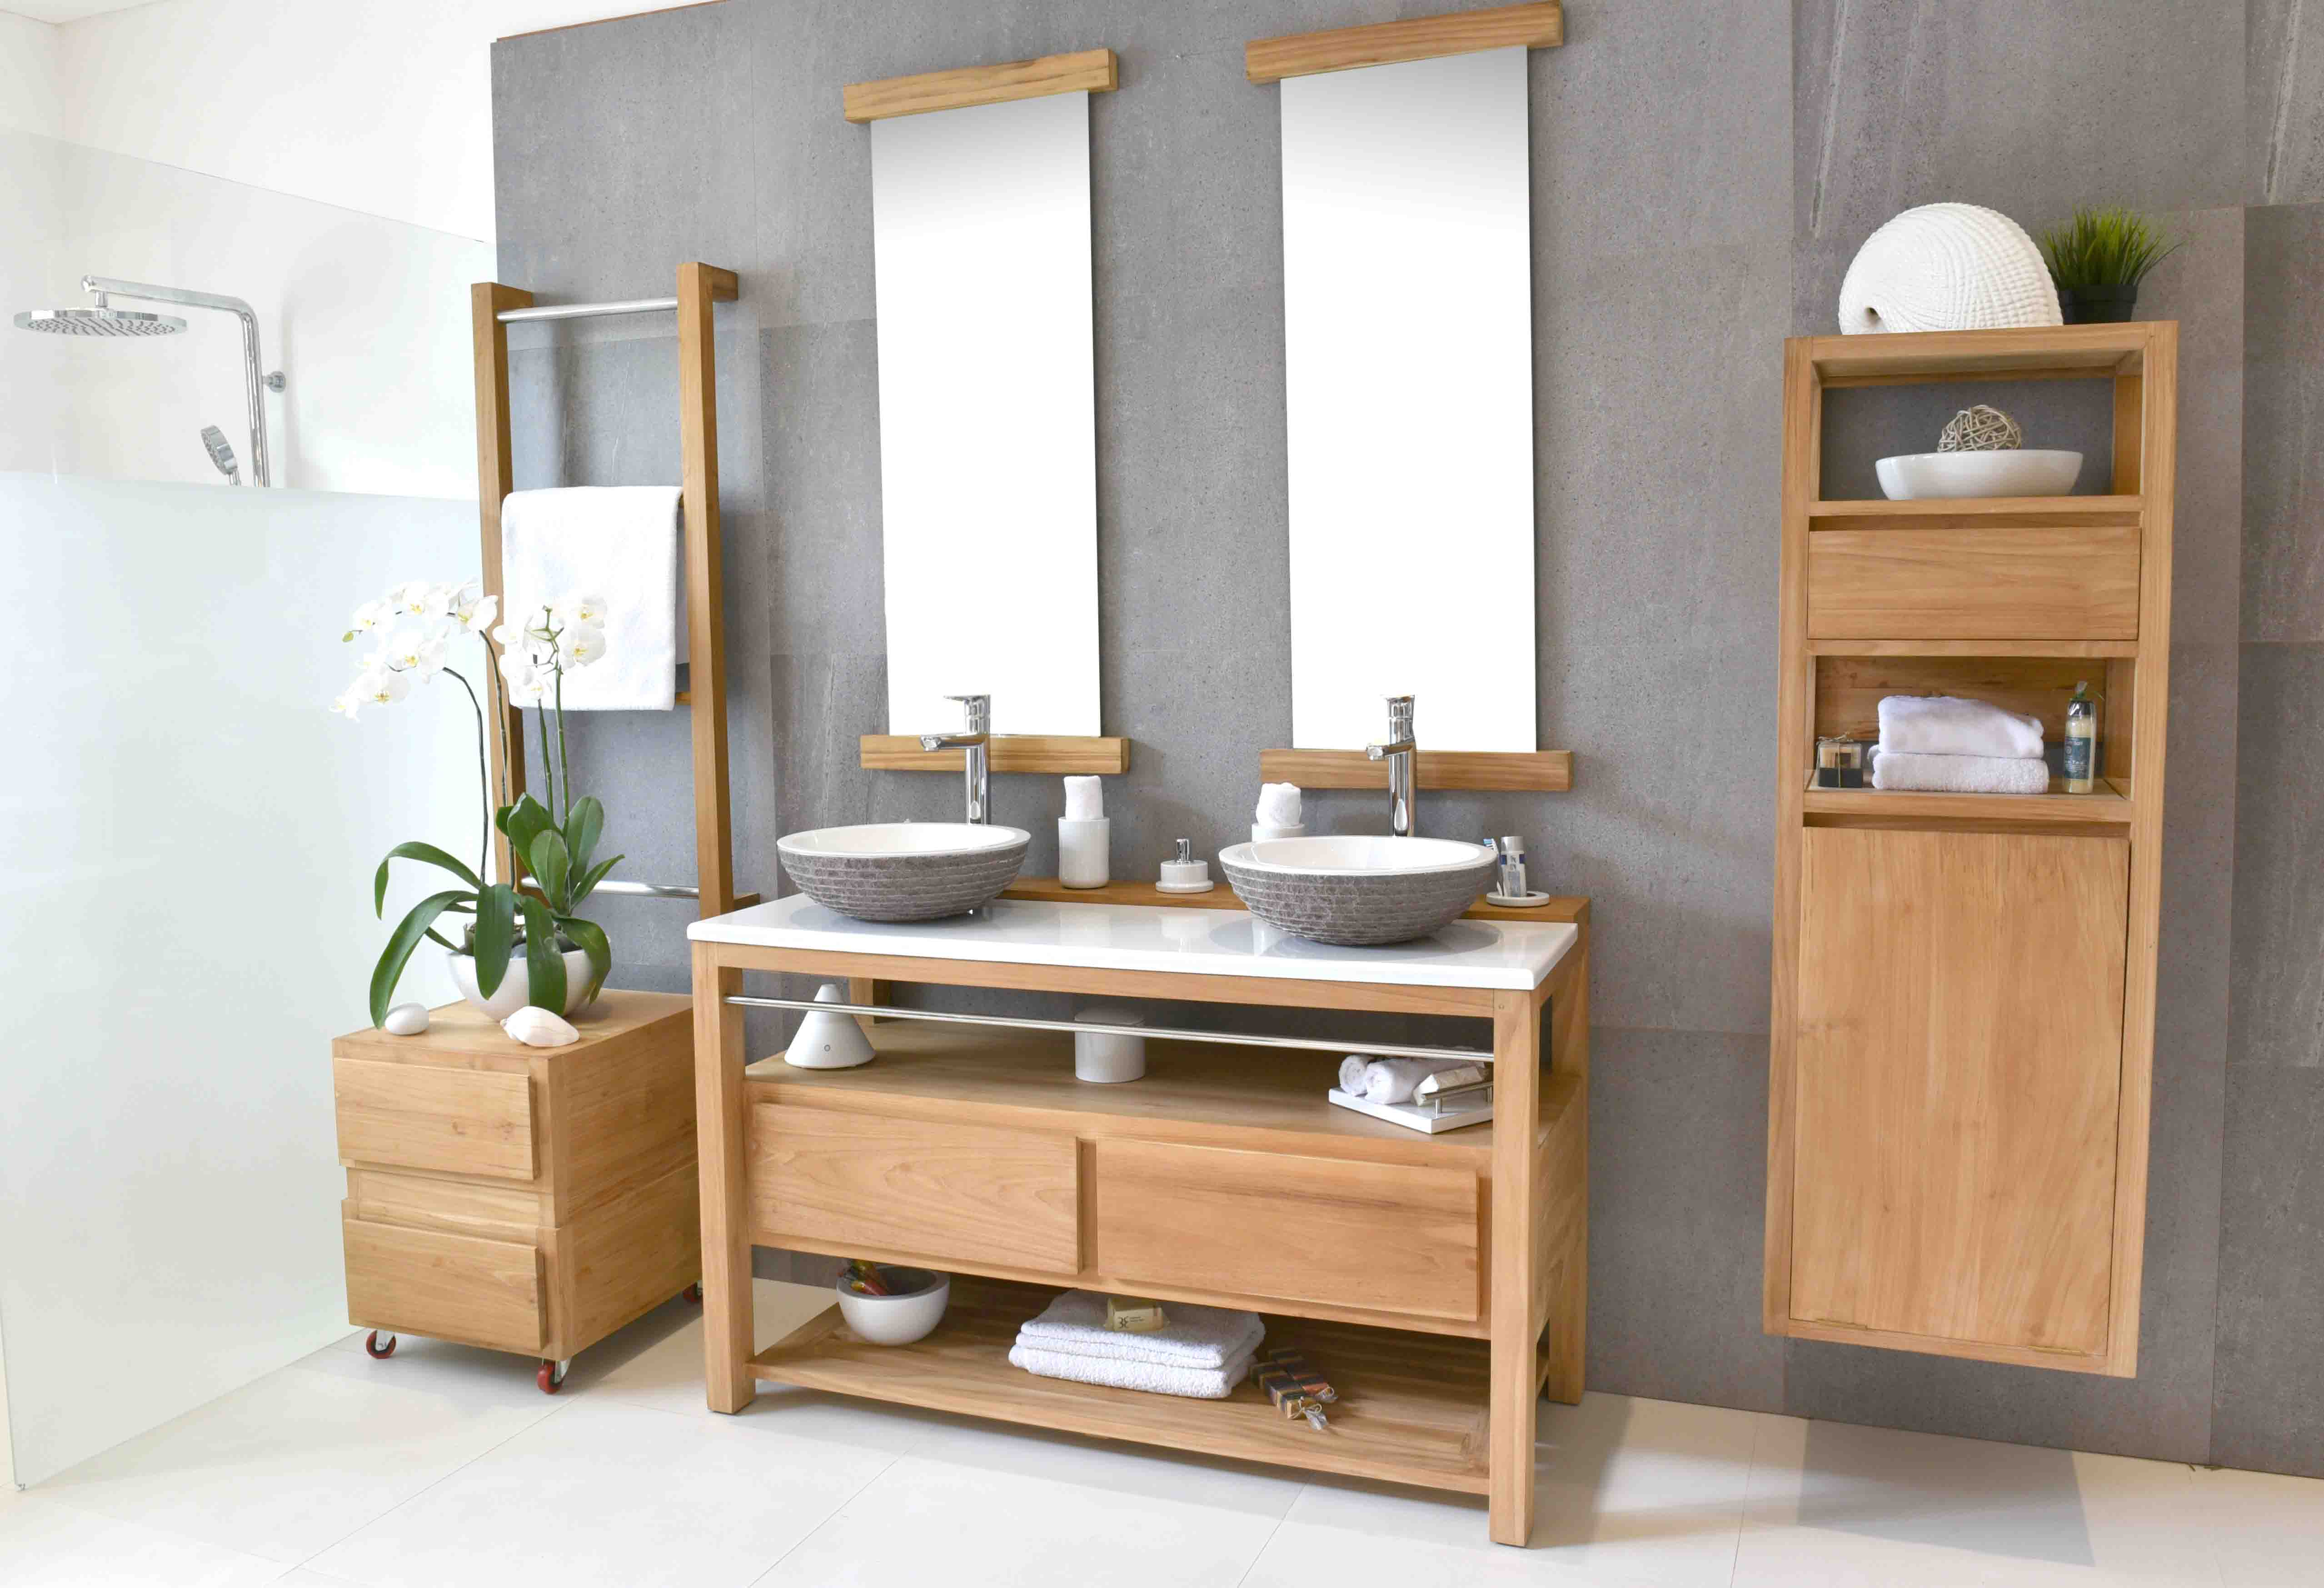 Tara-de-face-double-sink-white-furniture-modern-innovant-bois-teak-nature-couleur-lave-volcan-émaille-céramique-France-Luxe